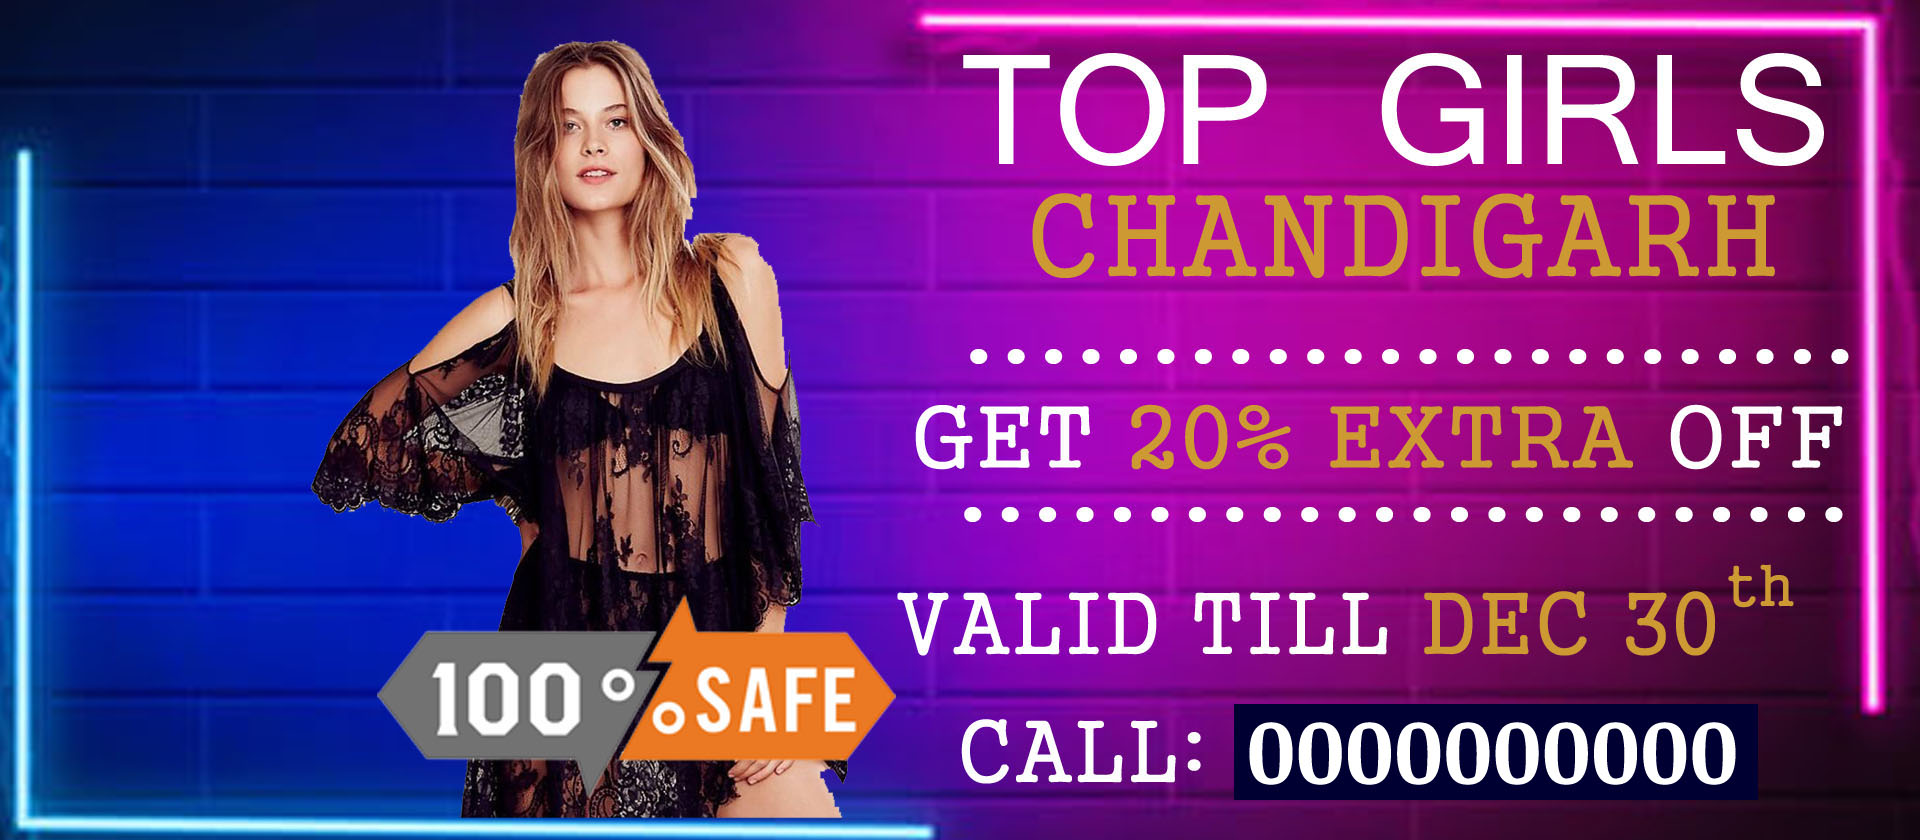 Escort Girls Chandigarh